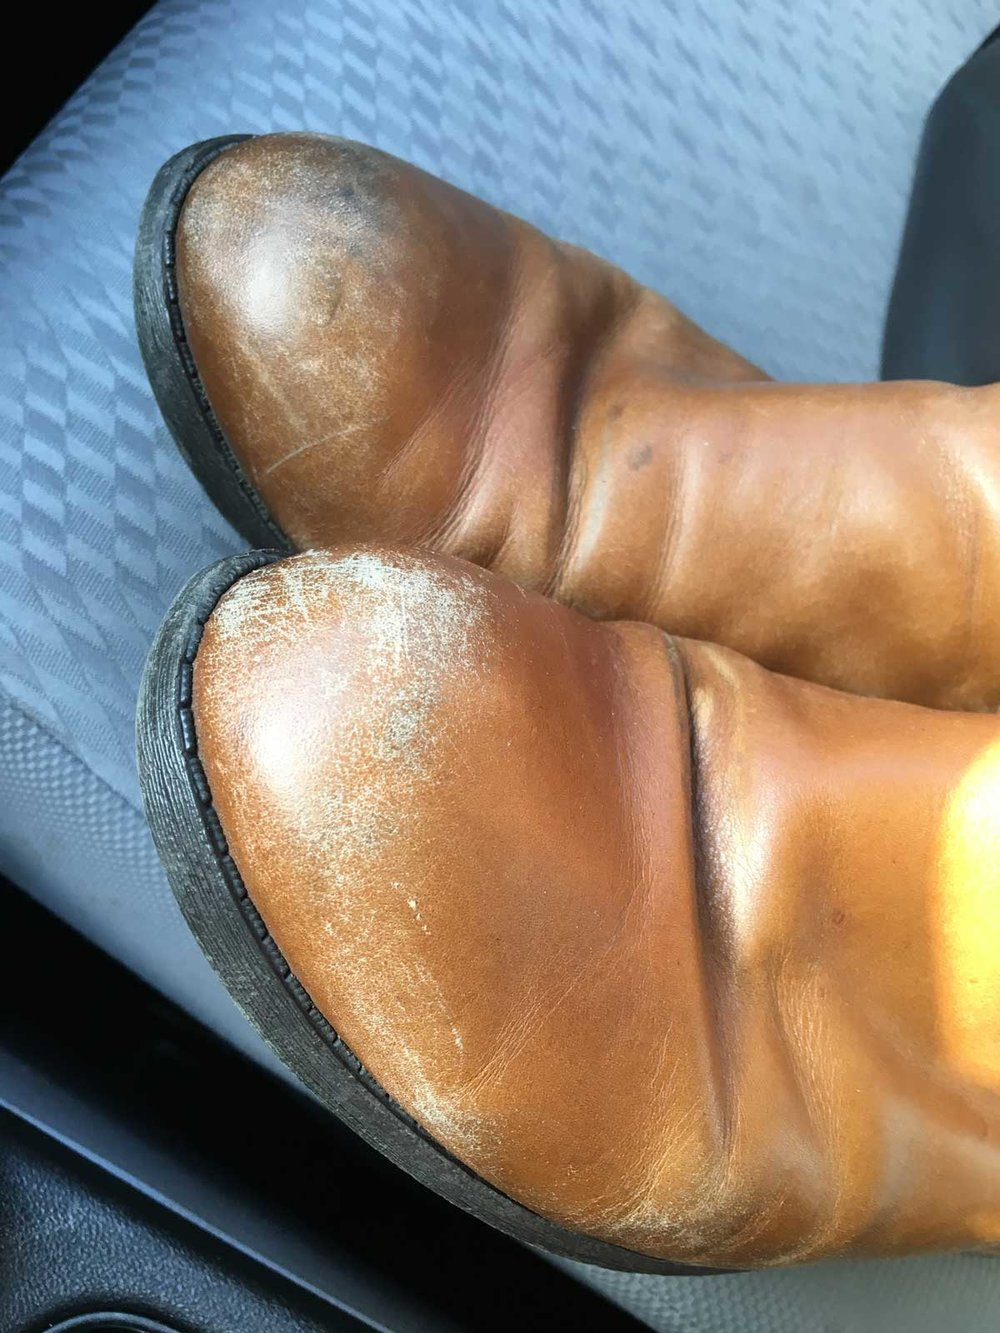 Boots before repair - the toes are in bad shape